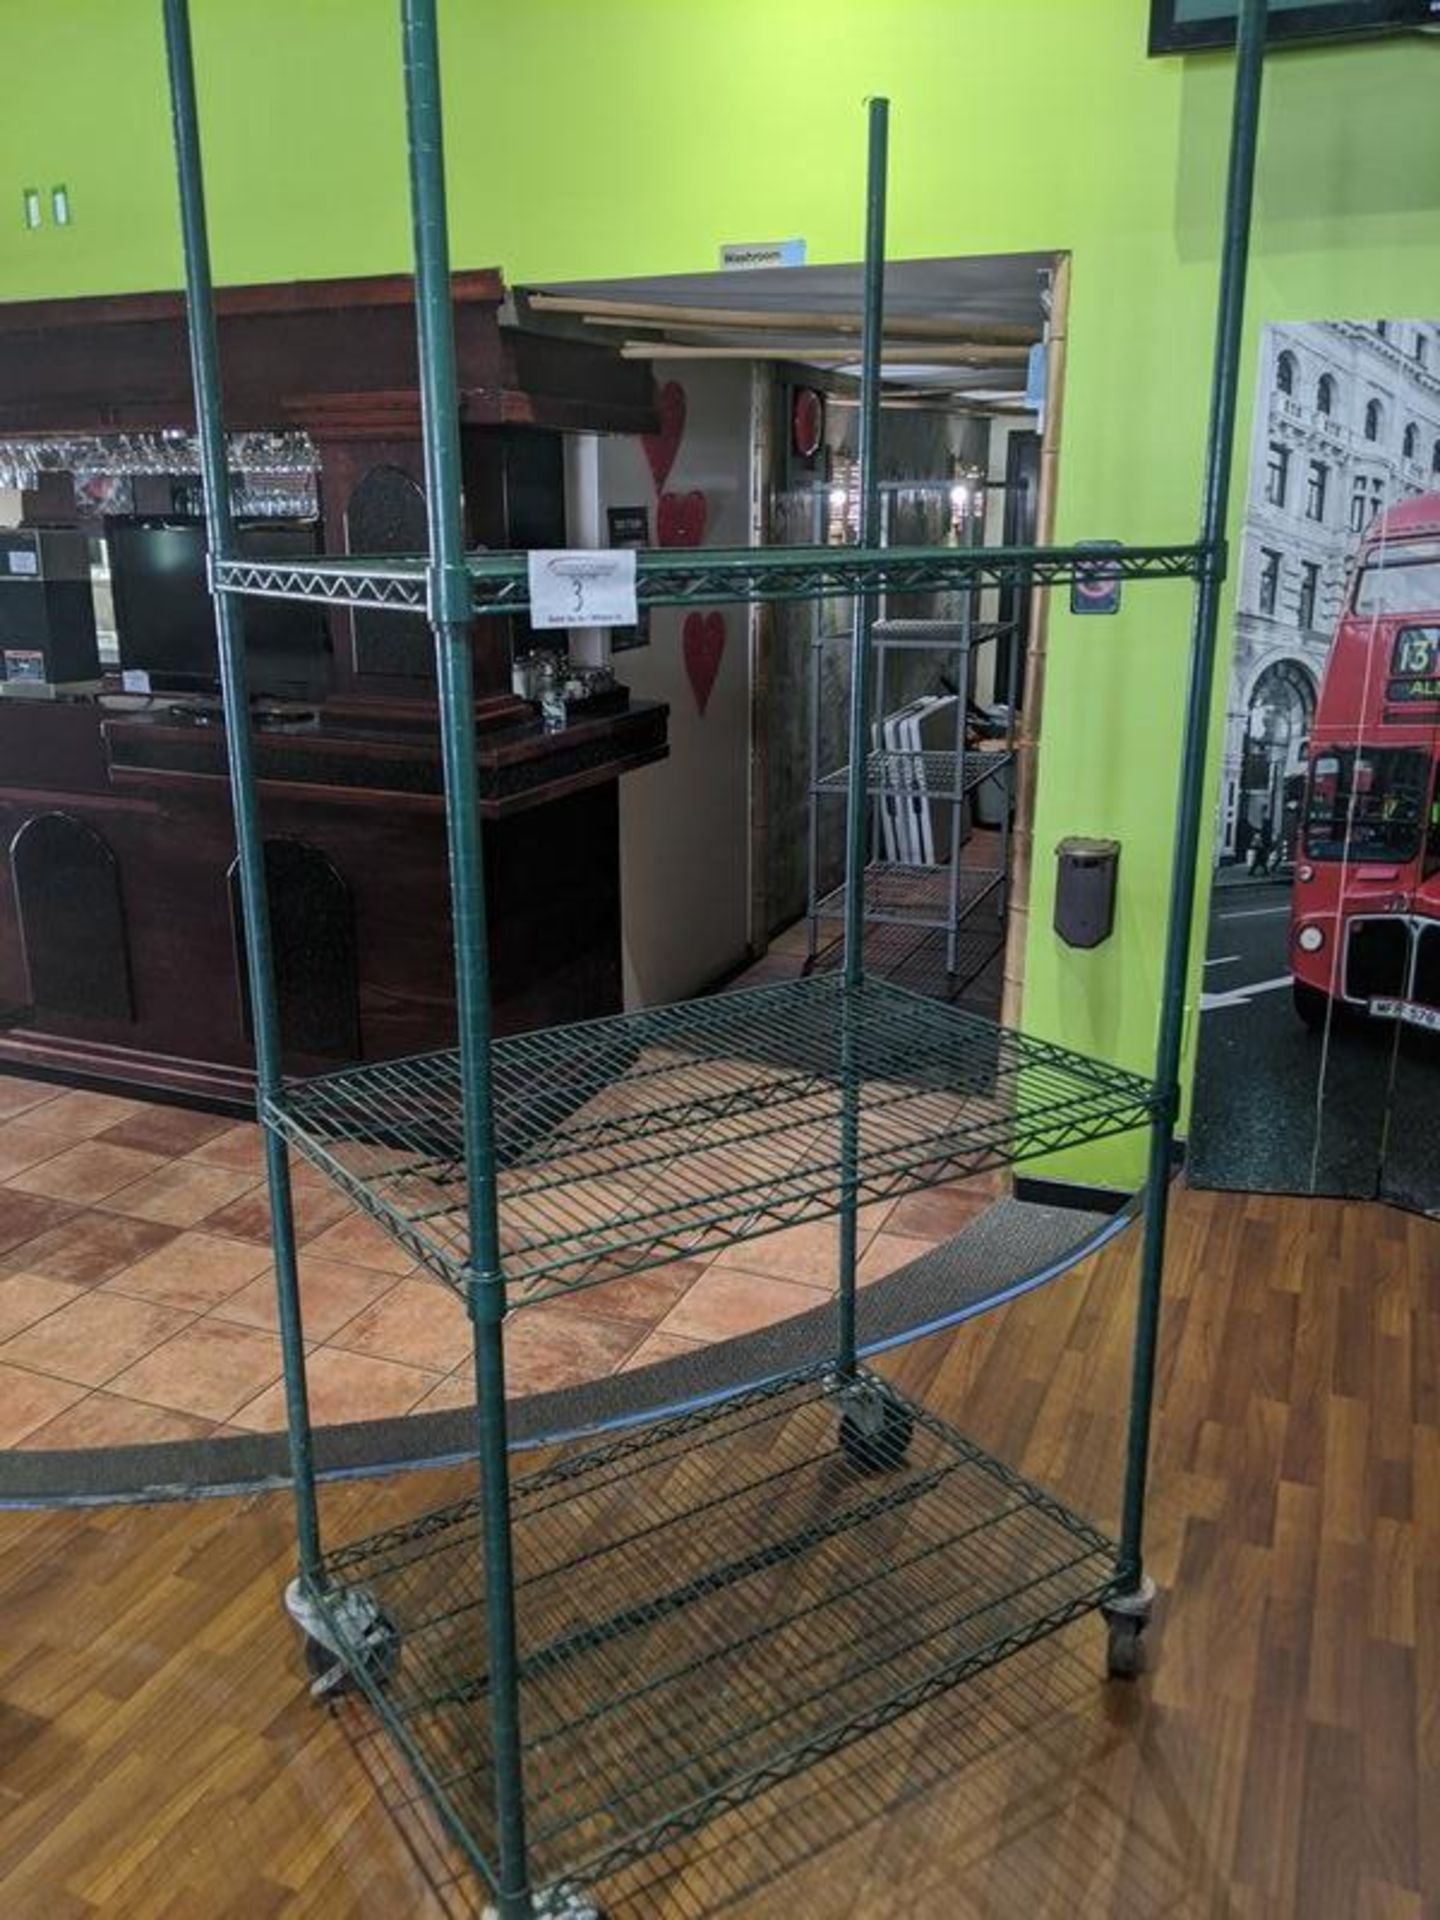 Lot 3 - 3 Tier Powder Coated Metro Rack on Casters